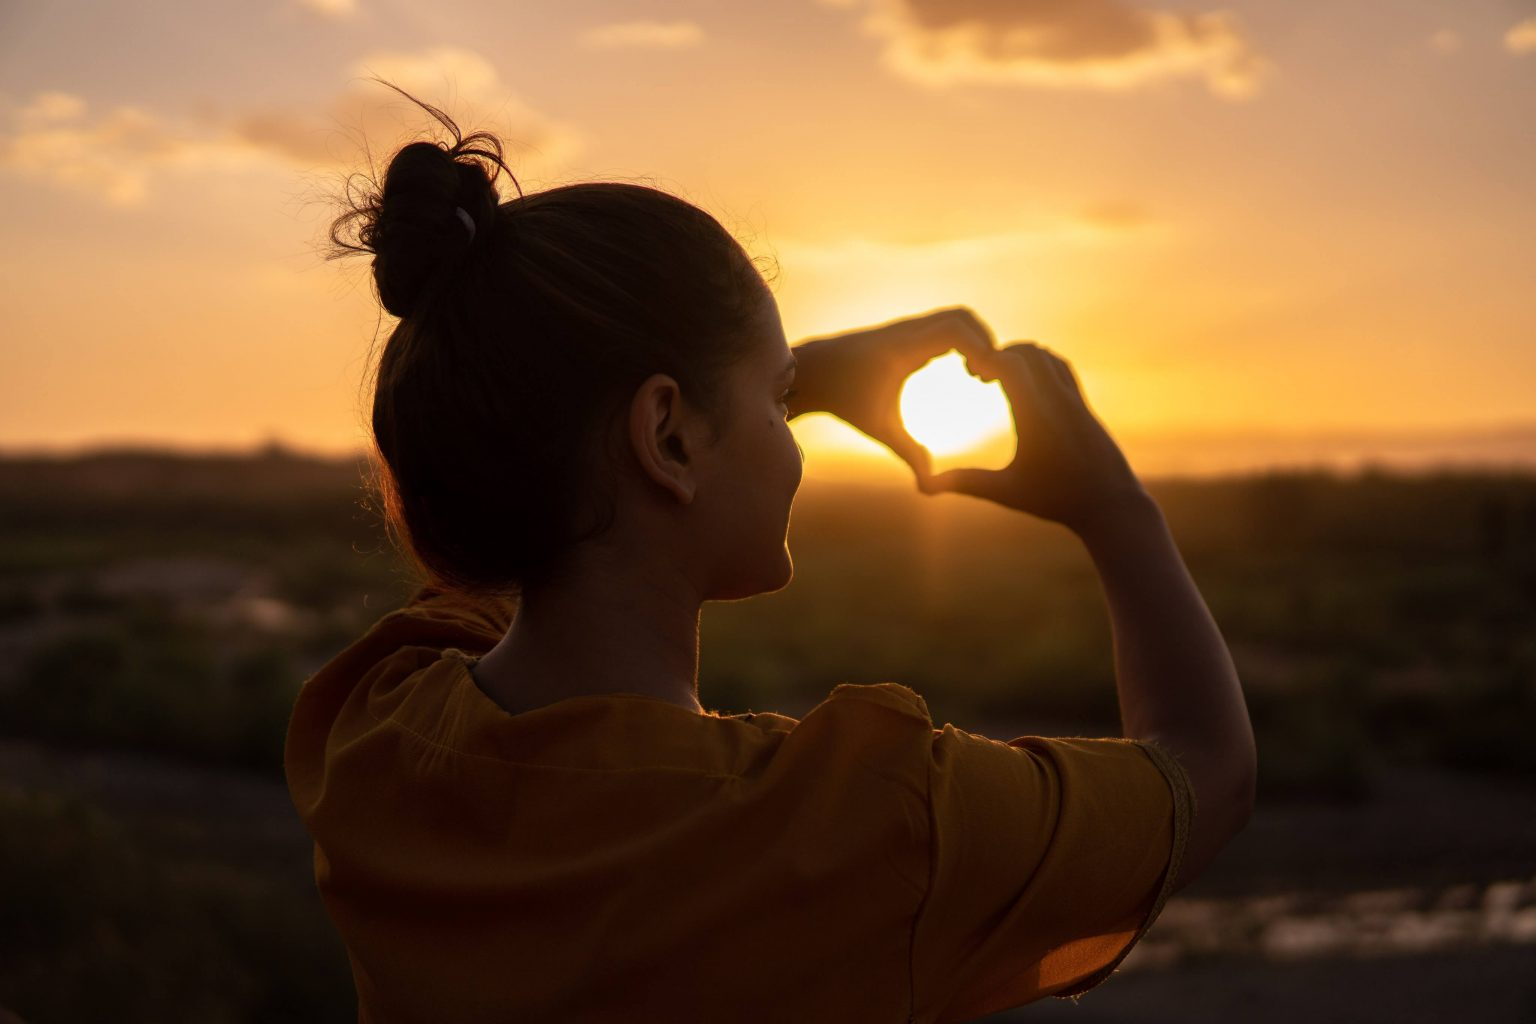 A girl forming a heart with her fingers in a sunset